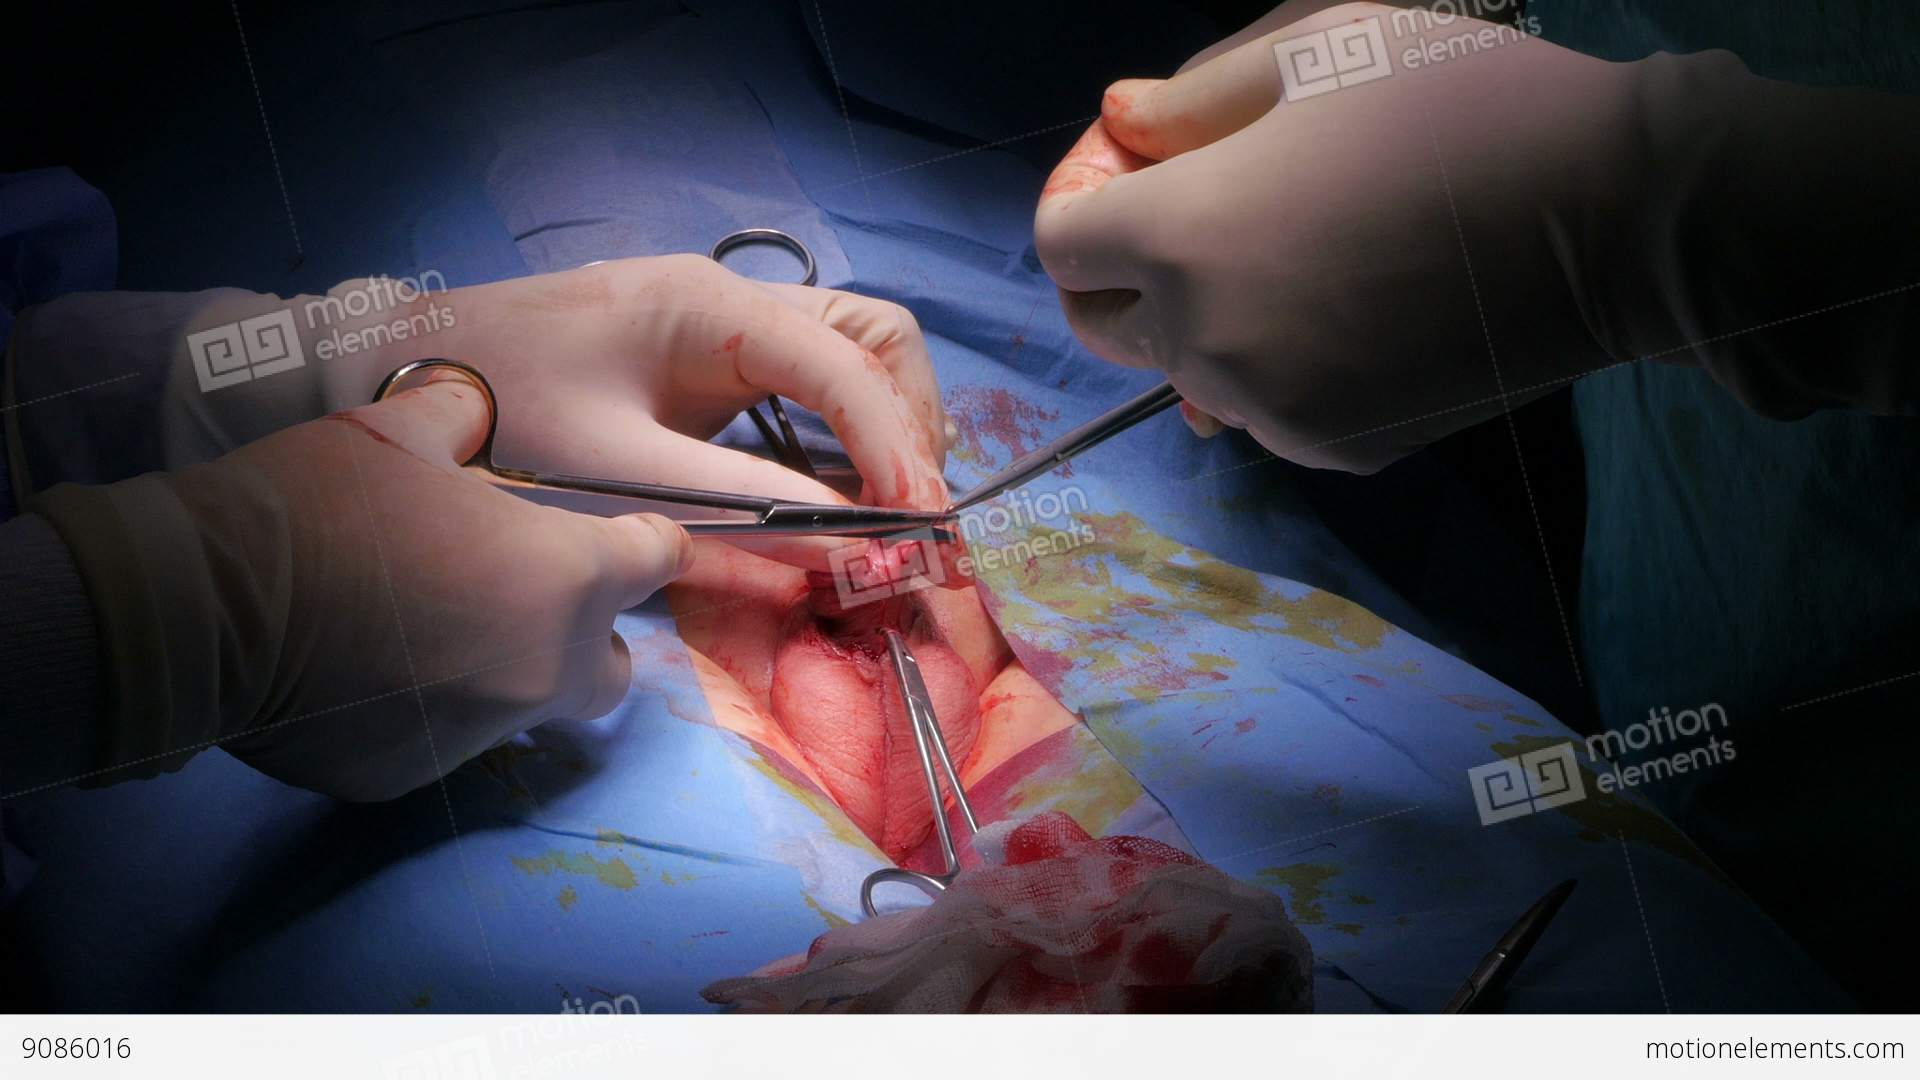 Circumcision Surgery Operation Of A Boy In Hospital Surgeon Room Stock ...